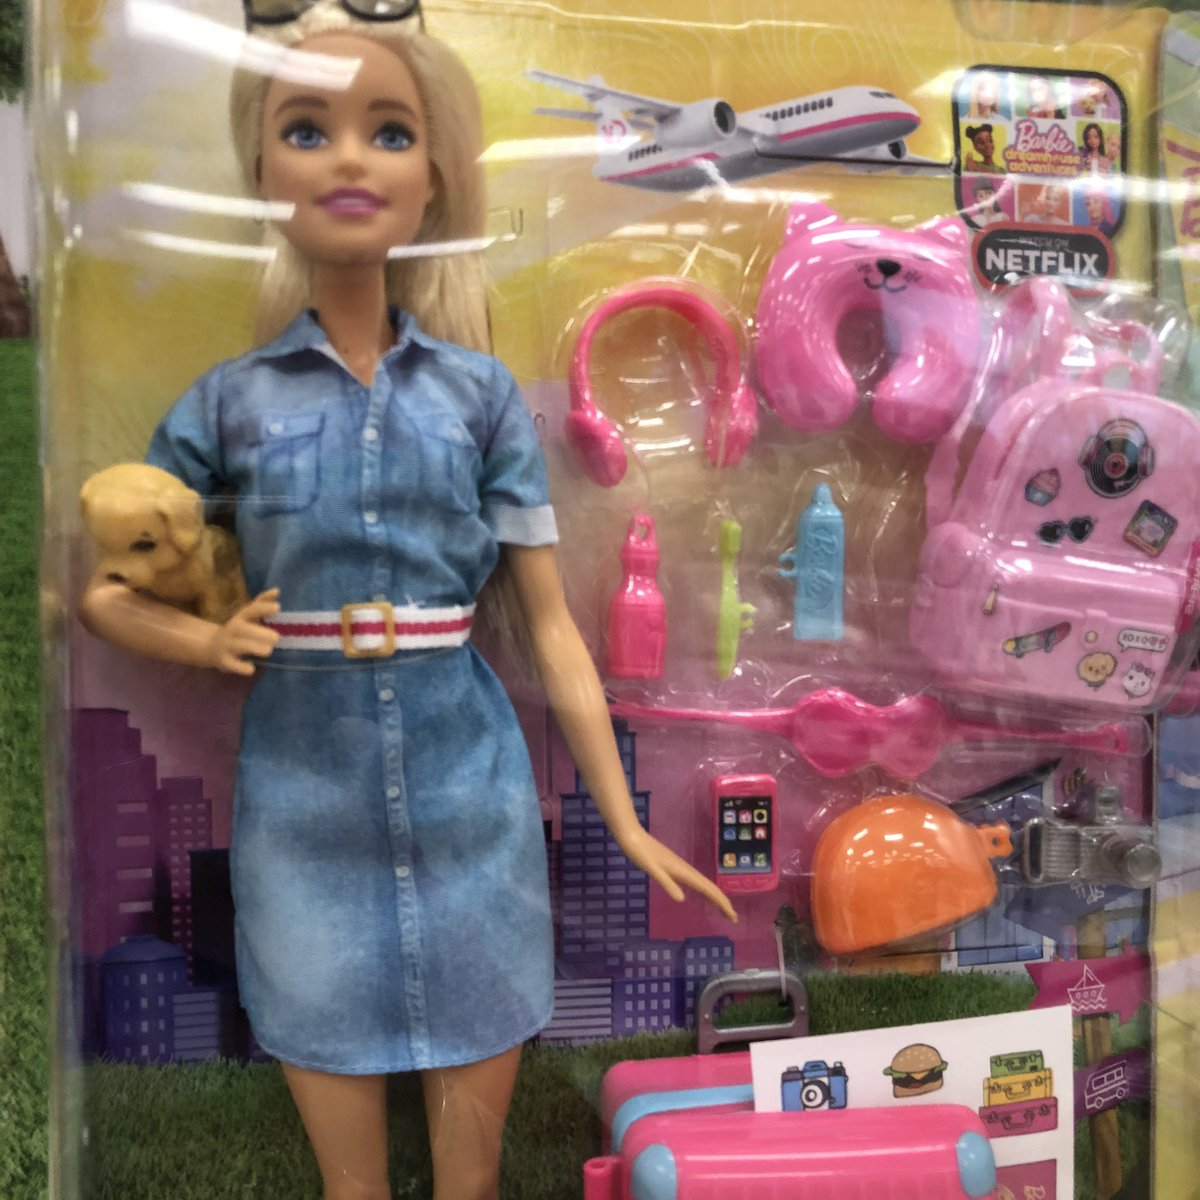 Travel Barbie and her #emotionalsupportanimal ? #visibility ? #disabilityawareness ? I wish it came with educational material/messaging #ESA #barbie #disability